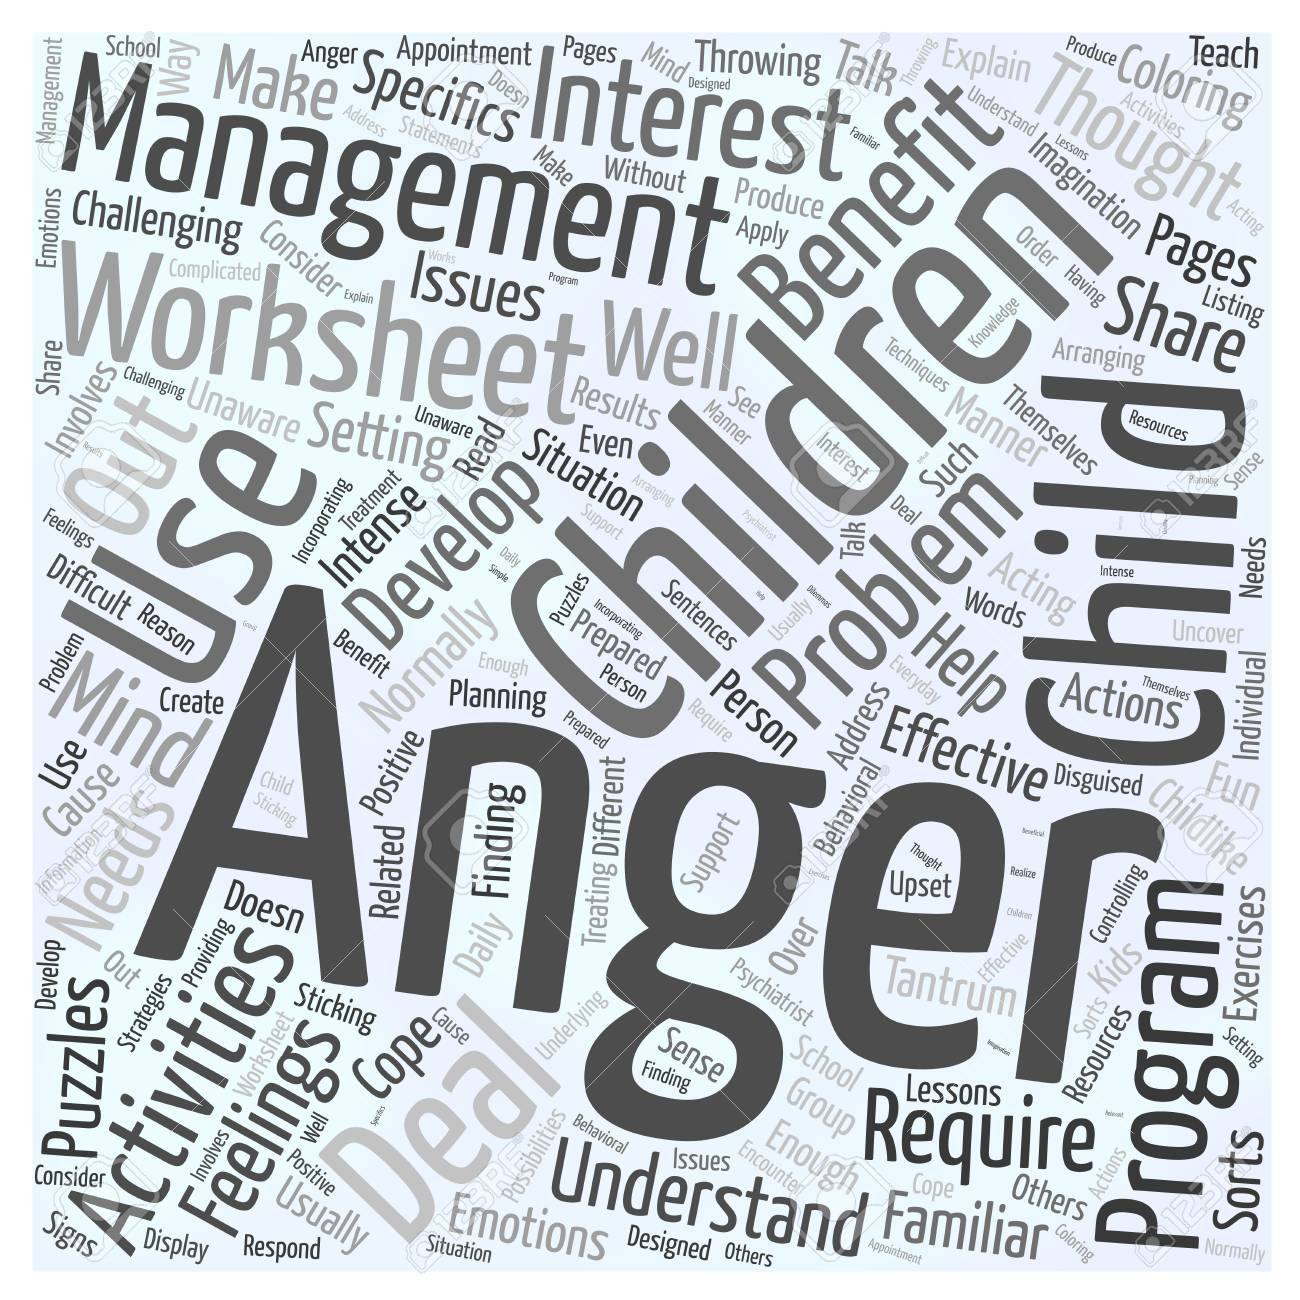 Why Children May Benefit From Anger Management Worksheets